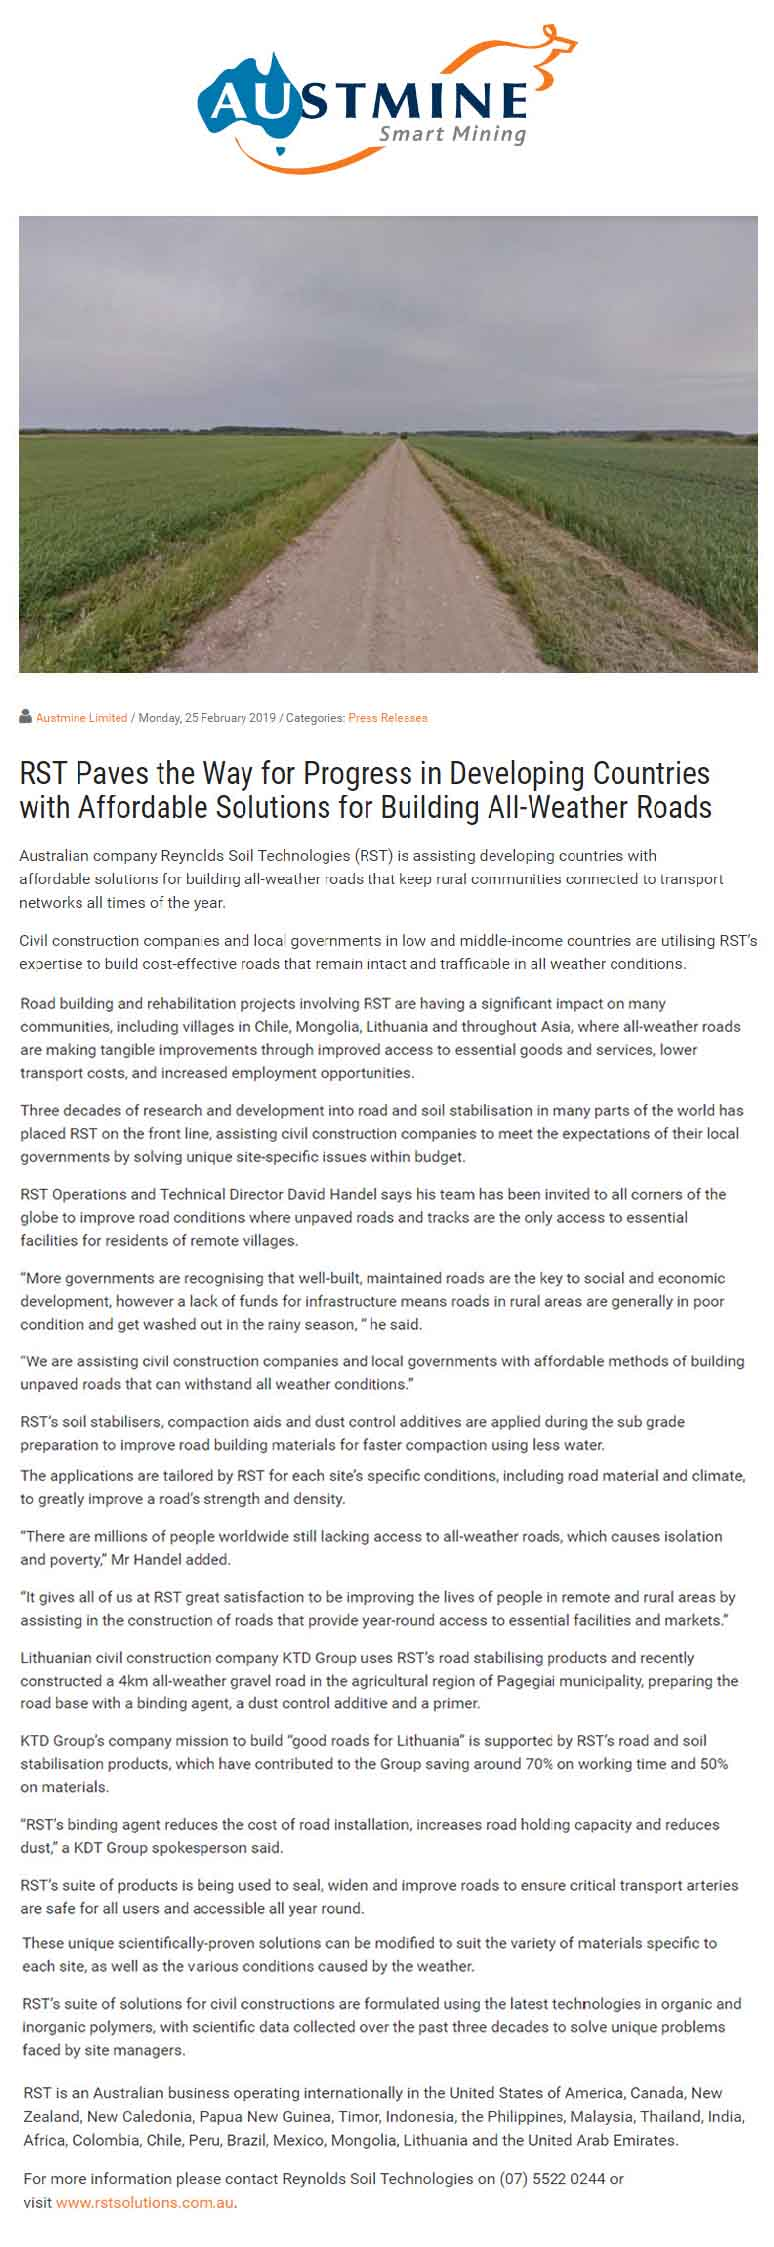 RST Paves the Way for Progress in Developing Countries with Affordable Solutions for Building All-Weather Roads (Austmine)